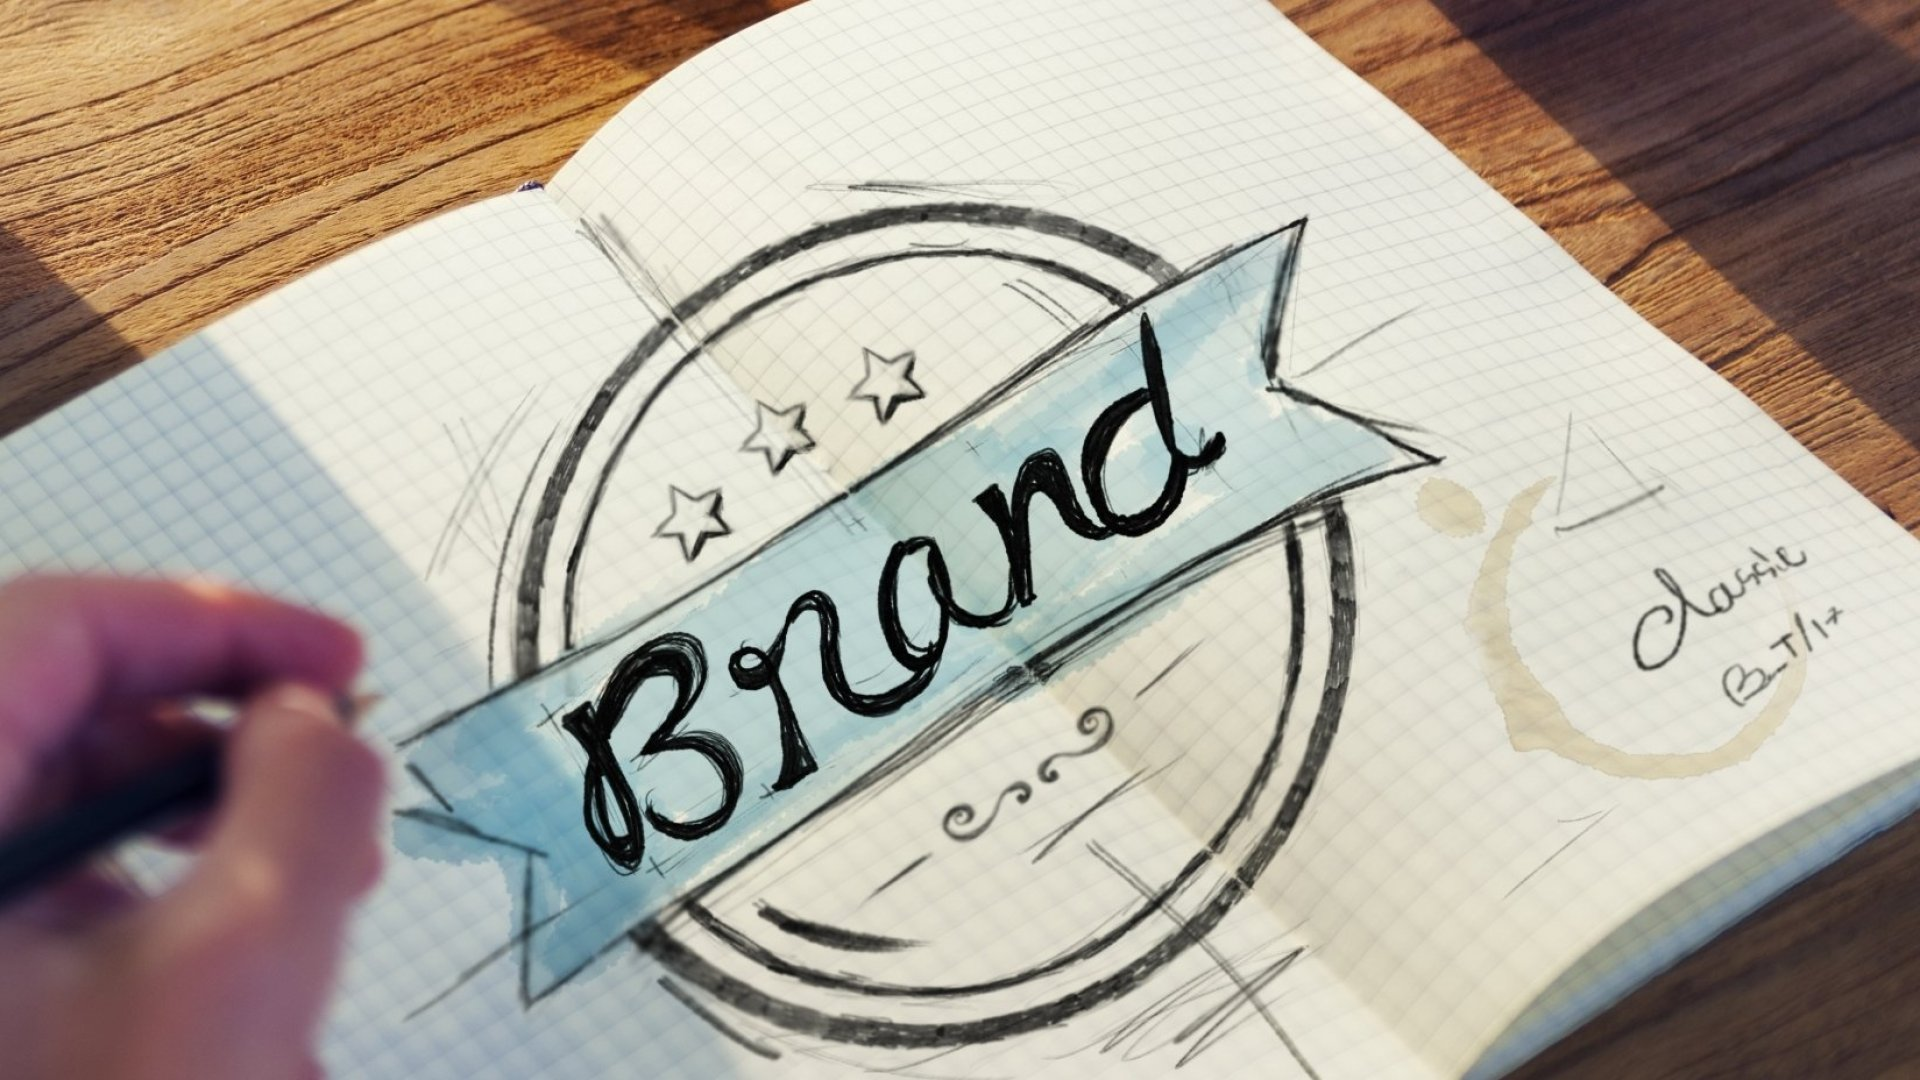 6 Things That Are Ruining Your Personal Brand